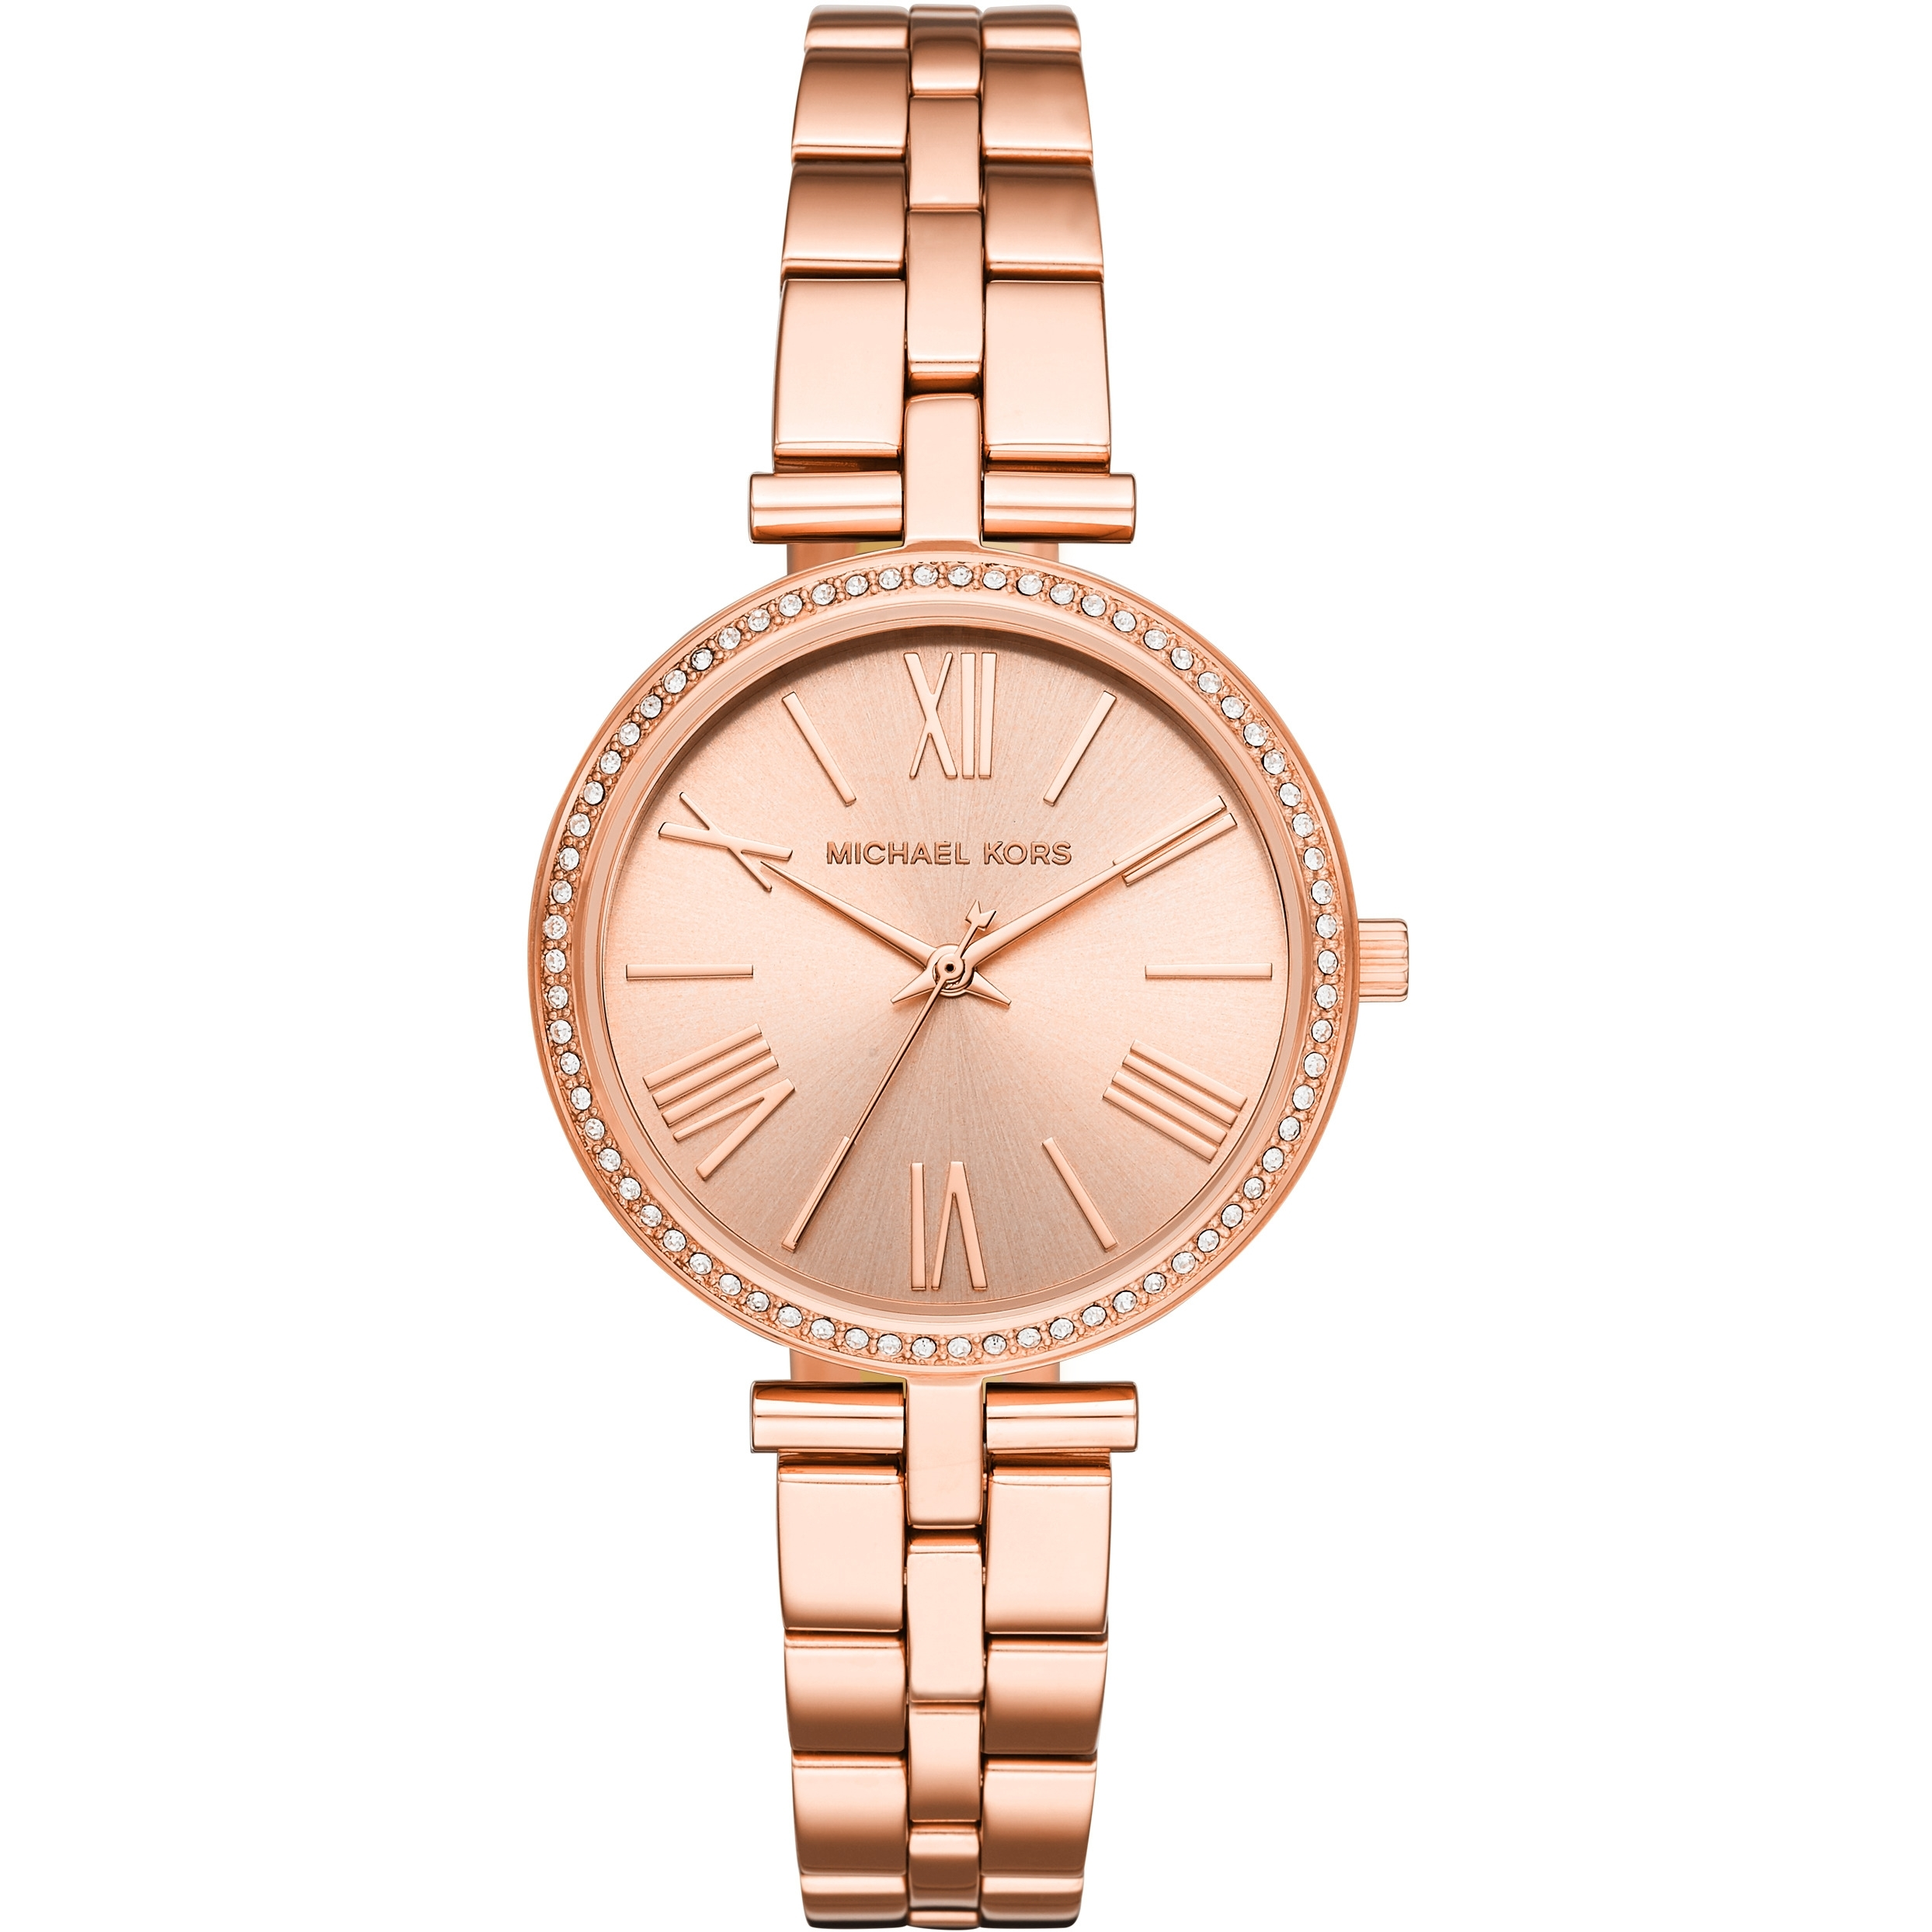 7efb0d7b117c0 Michael Kors Watch (MK3904)